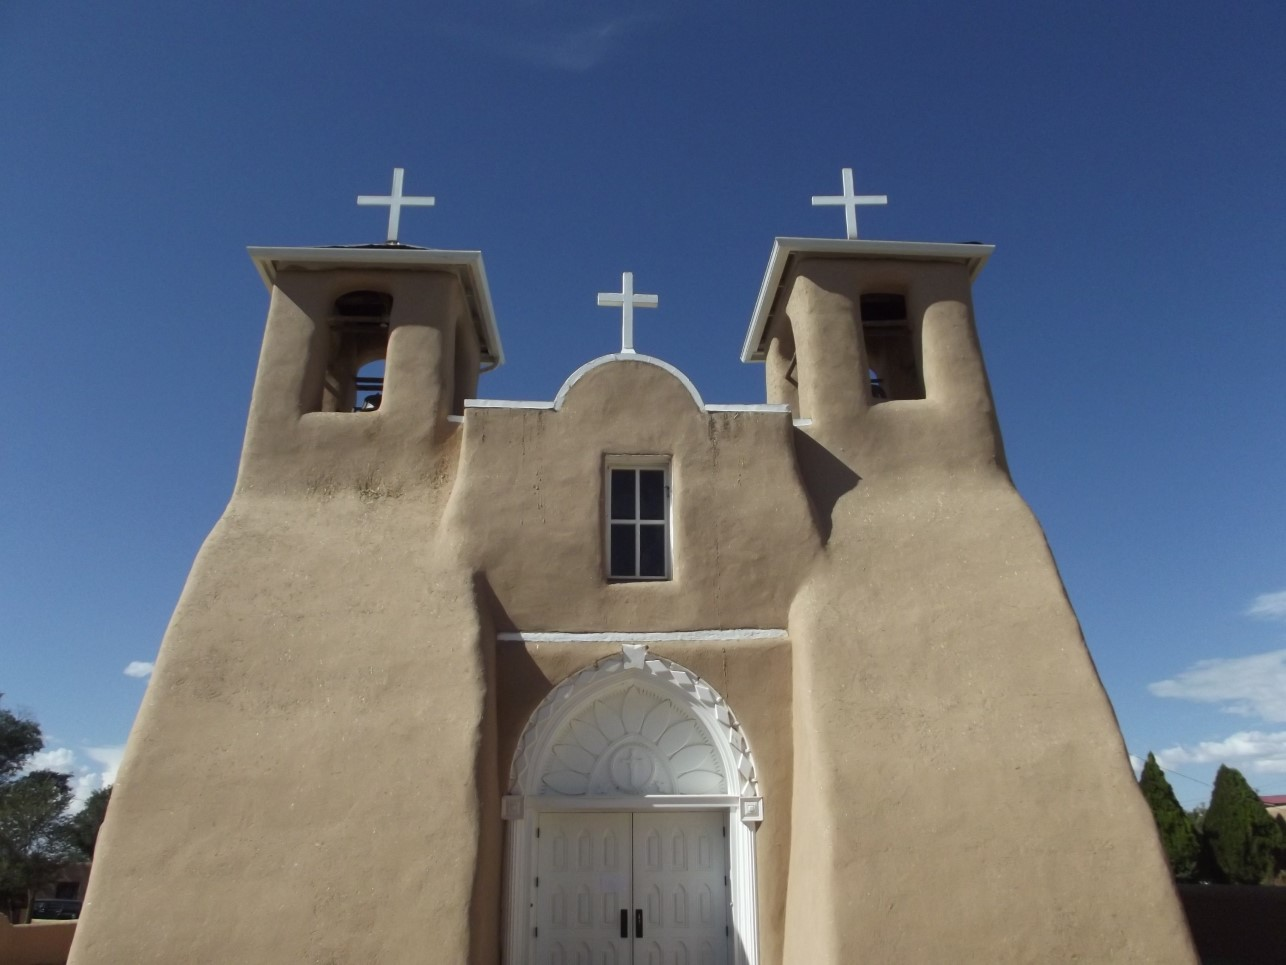 Solid adobe church with white crosses and door